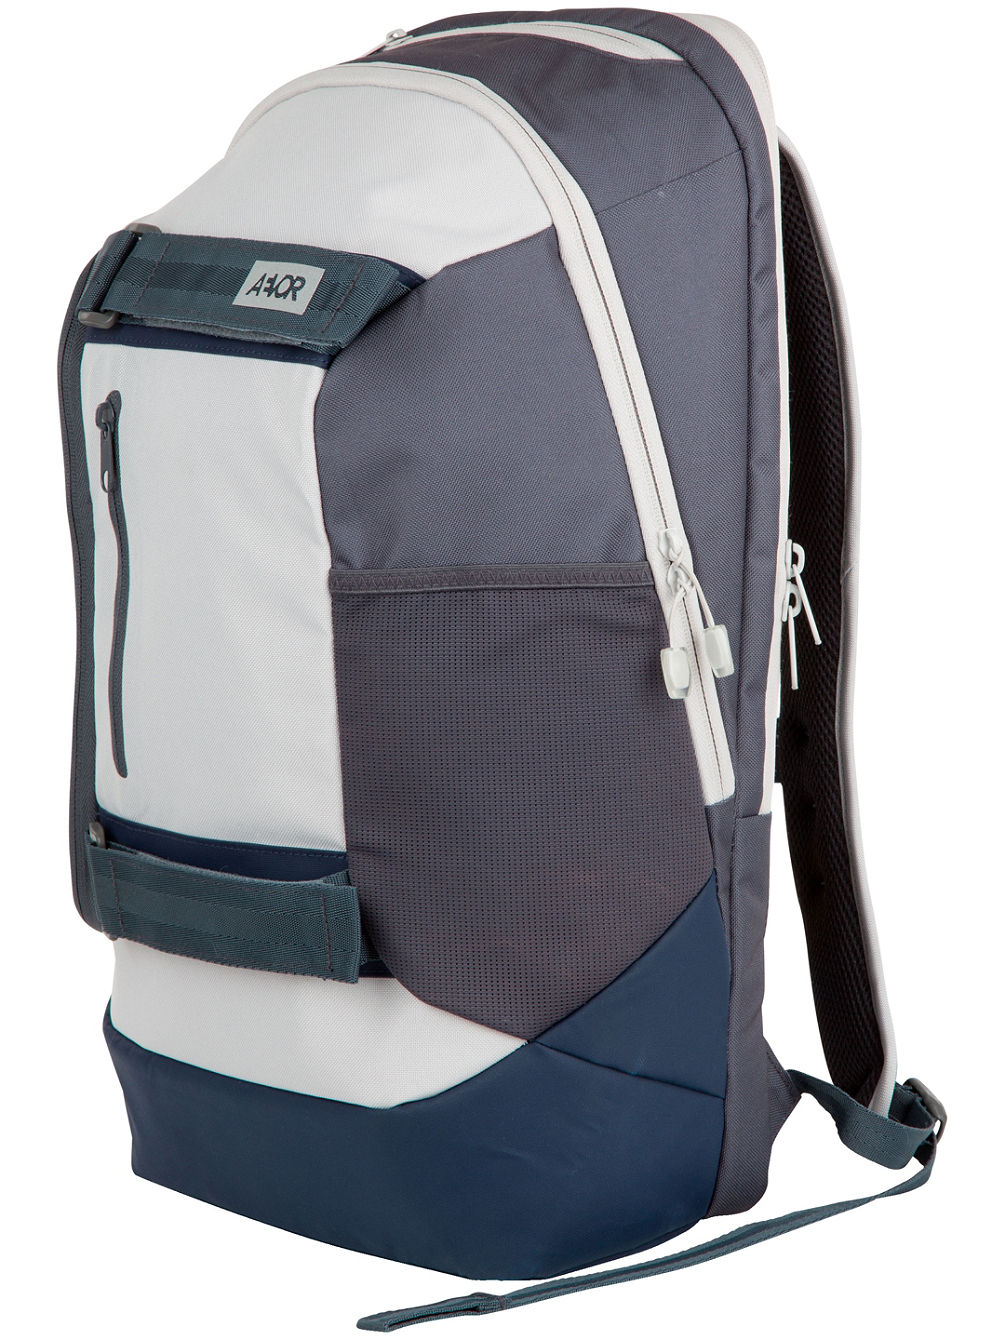 Bookpack Skatepack Backpack